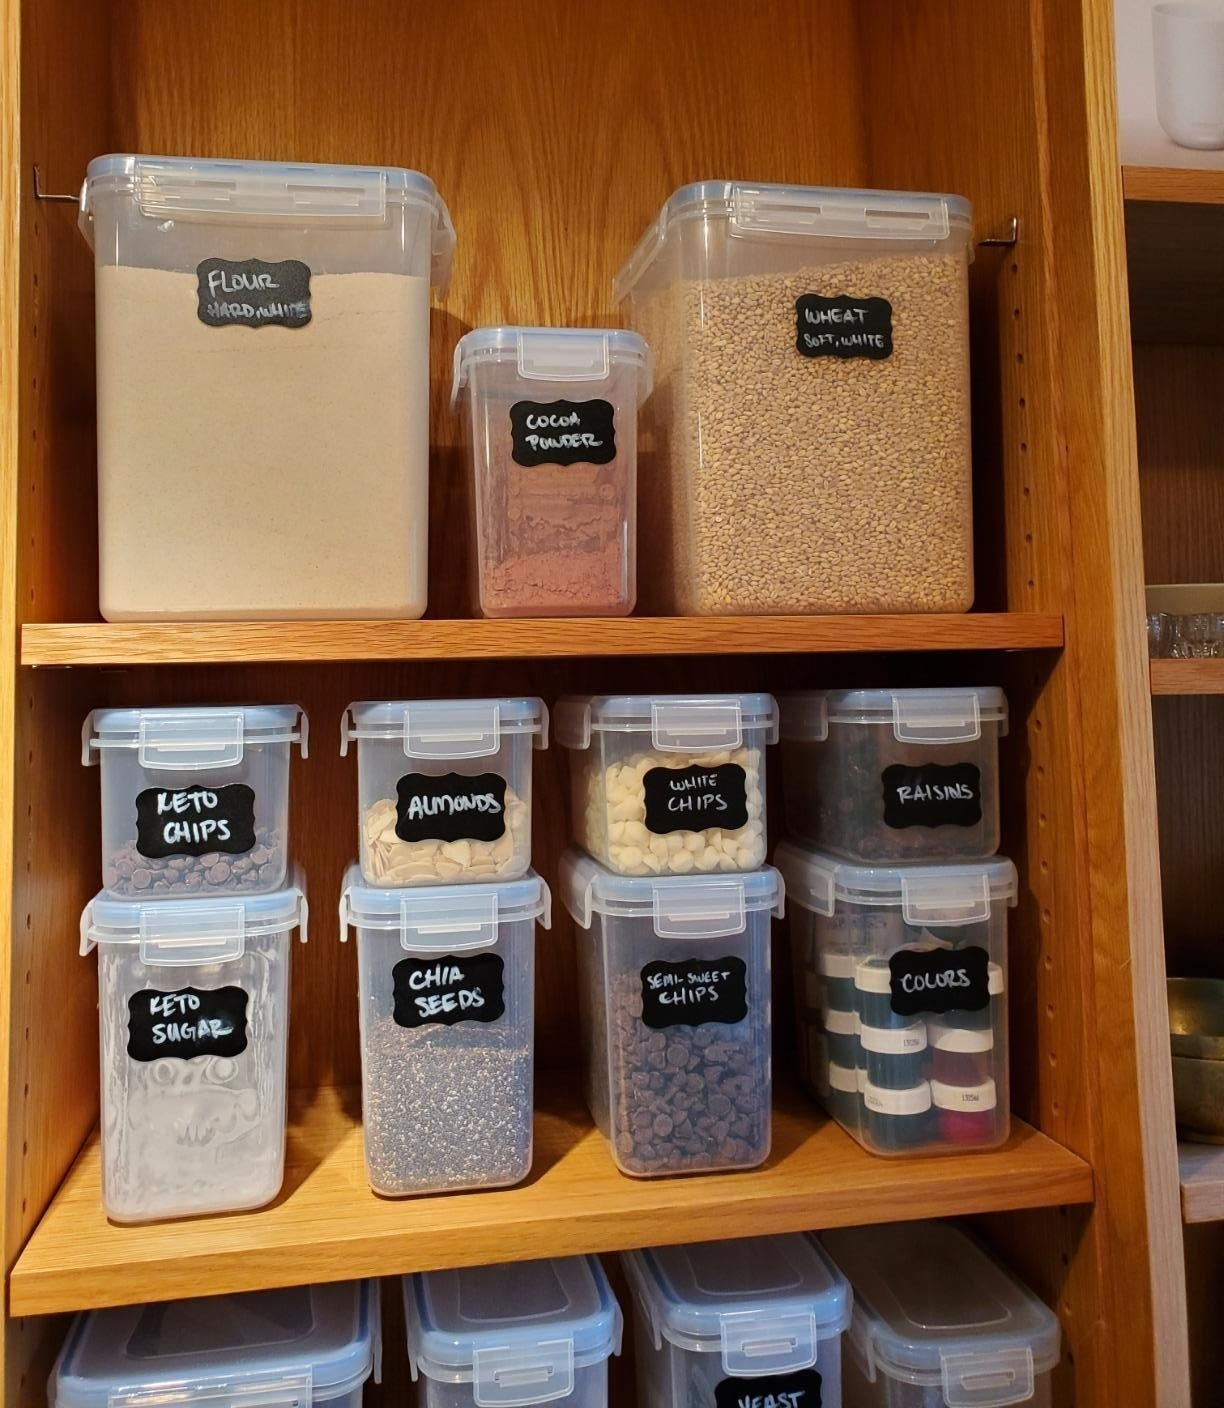 reviewer image of the full 15 piece Vtopmart Airtight Food Storage Containers Set in a cabinet being used to store different kinds of food